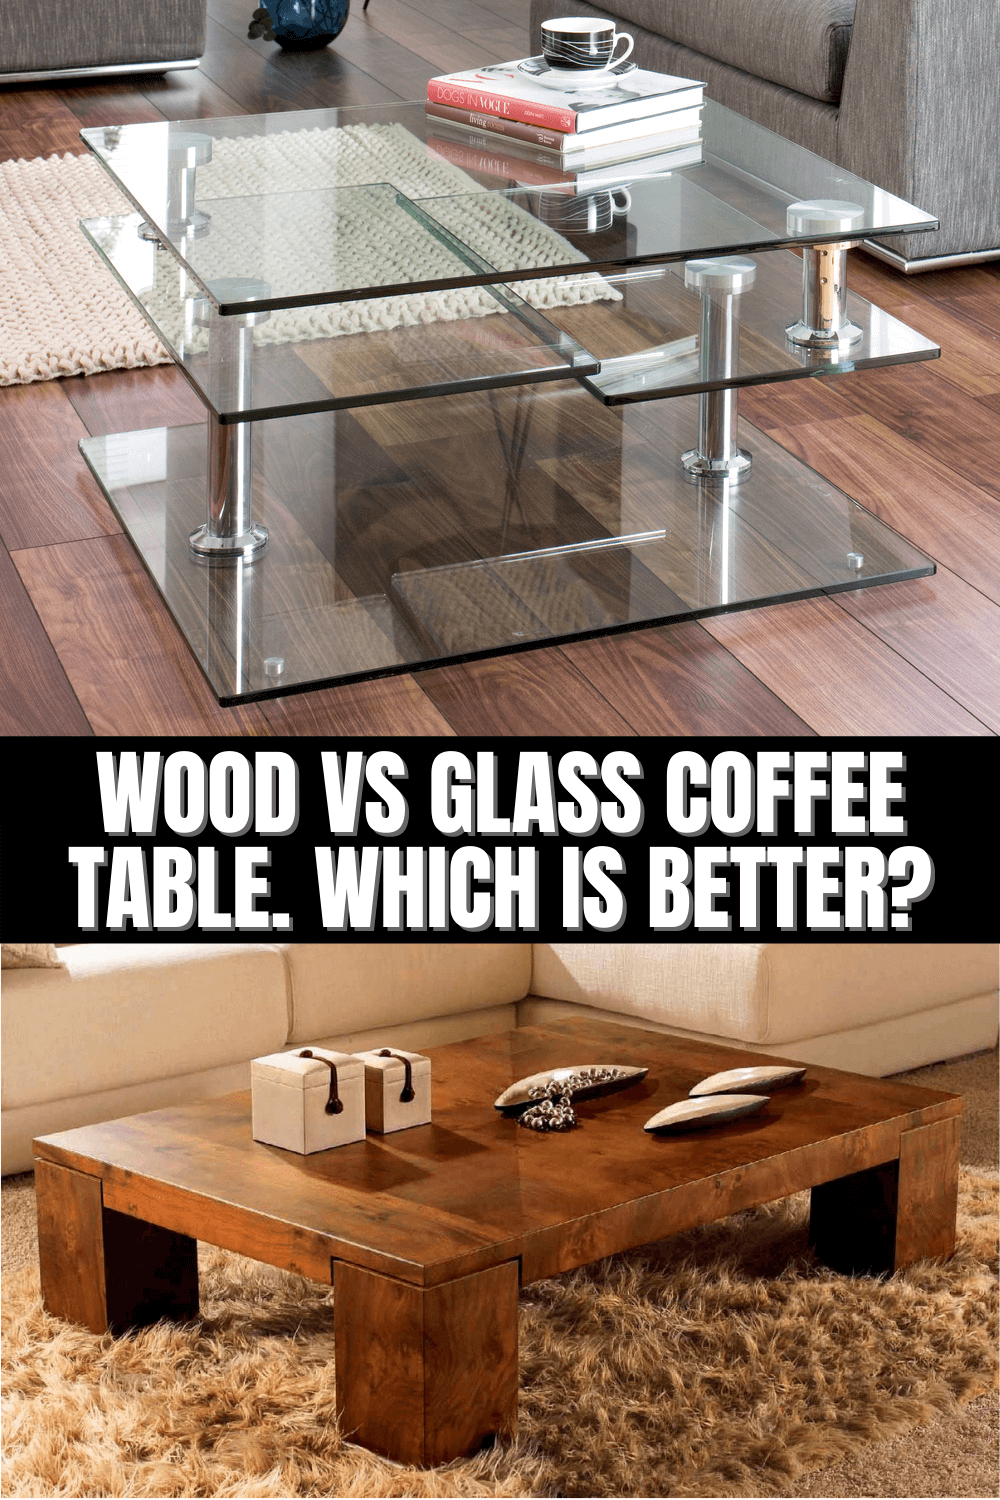 Wood Vs Glass Coffee Table Which Is Better Coffee Table Wood Glass Coffee Table Coffee Table [ 1500 x 1000 Pixel ]